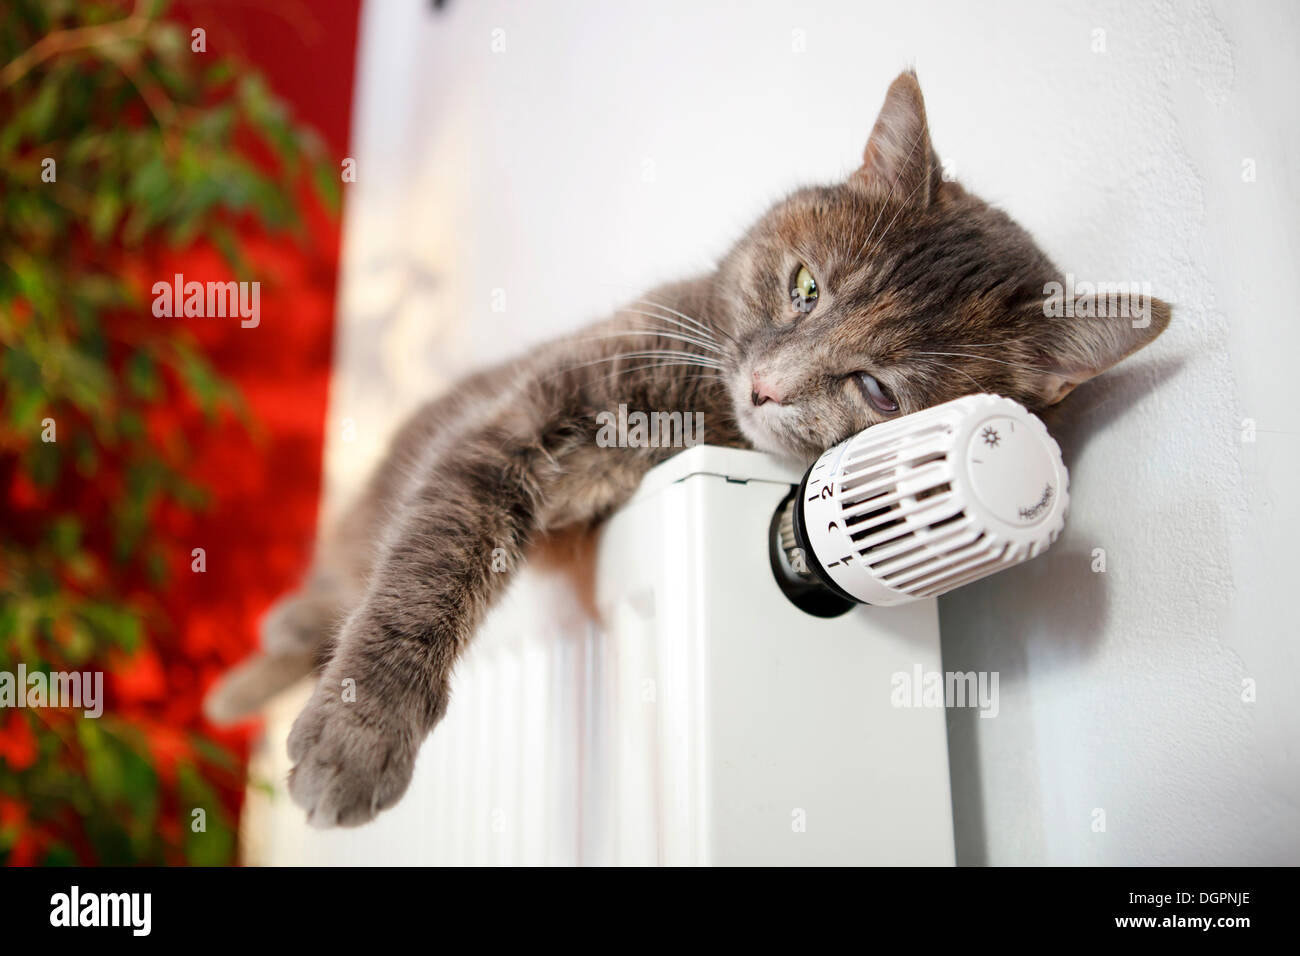 Lazy cat lying on a heater - Stock Image